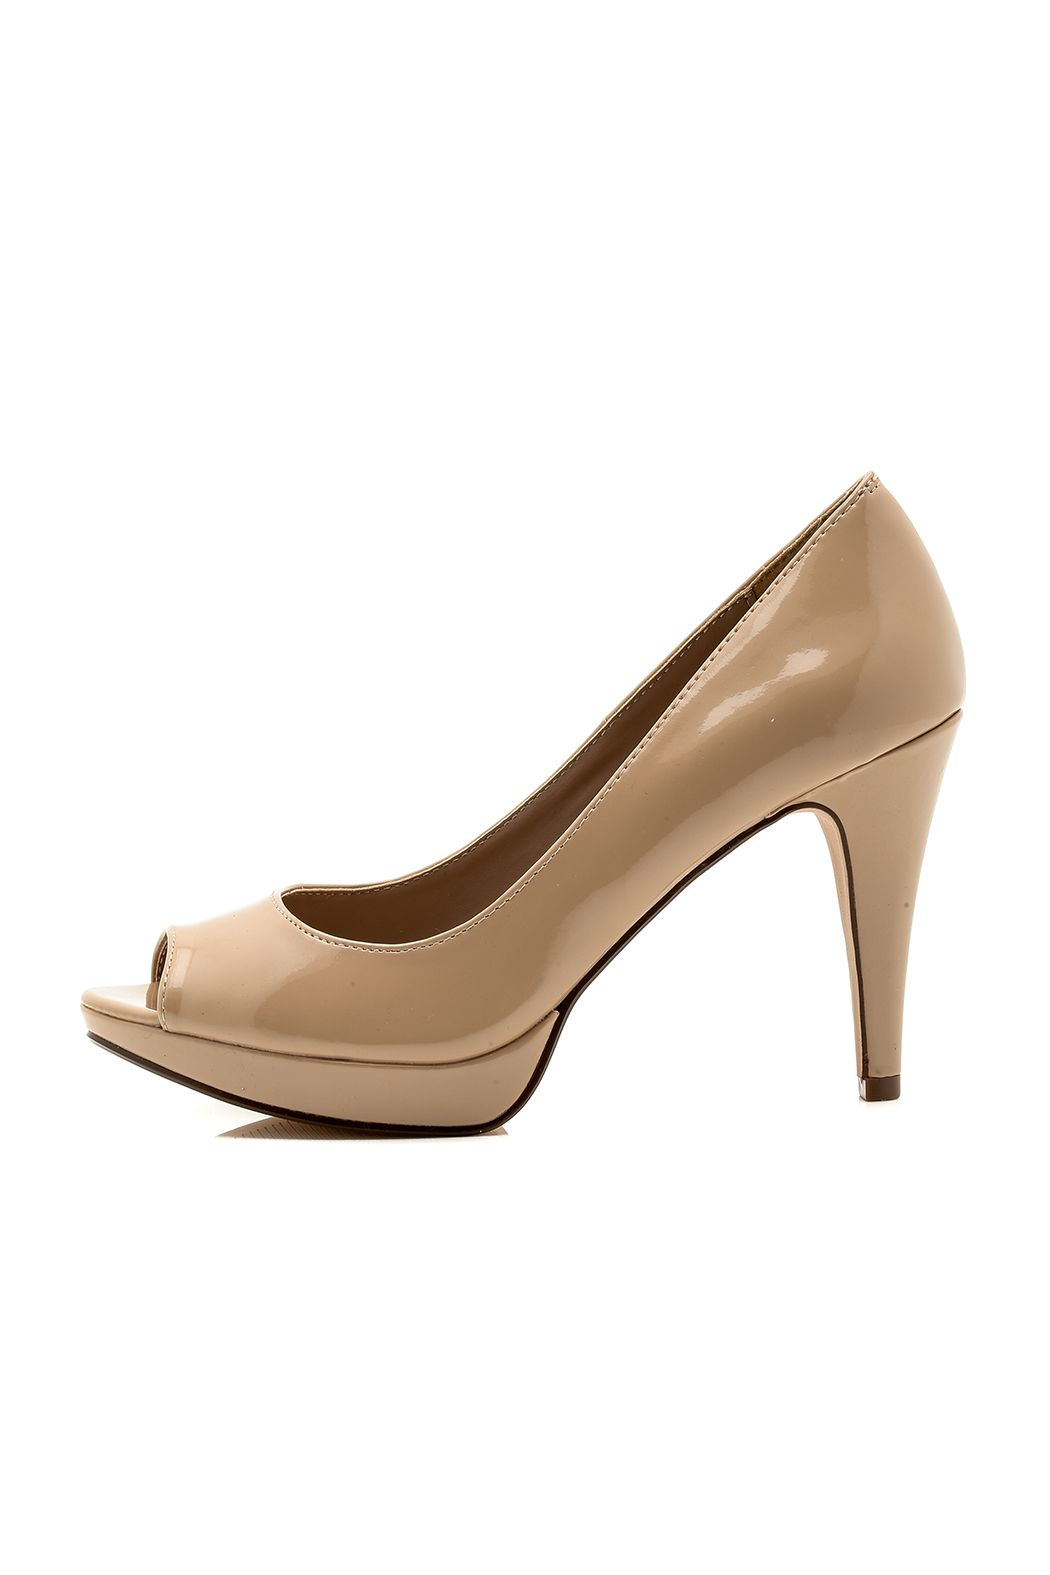 094b835b29 Open toe pump with a slight platform and a peep toe front. This classic nude  heel will be your new go-to shoe. Heel height  4